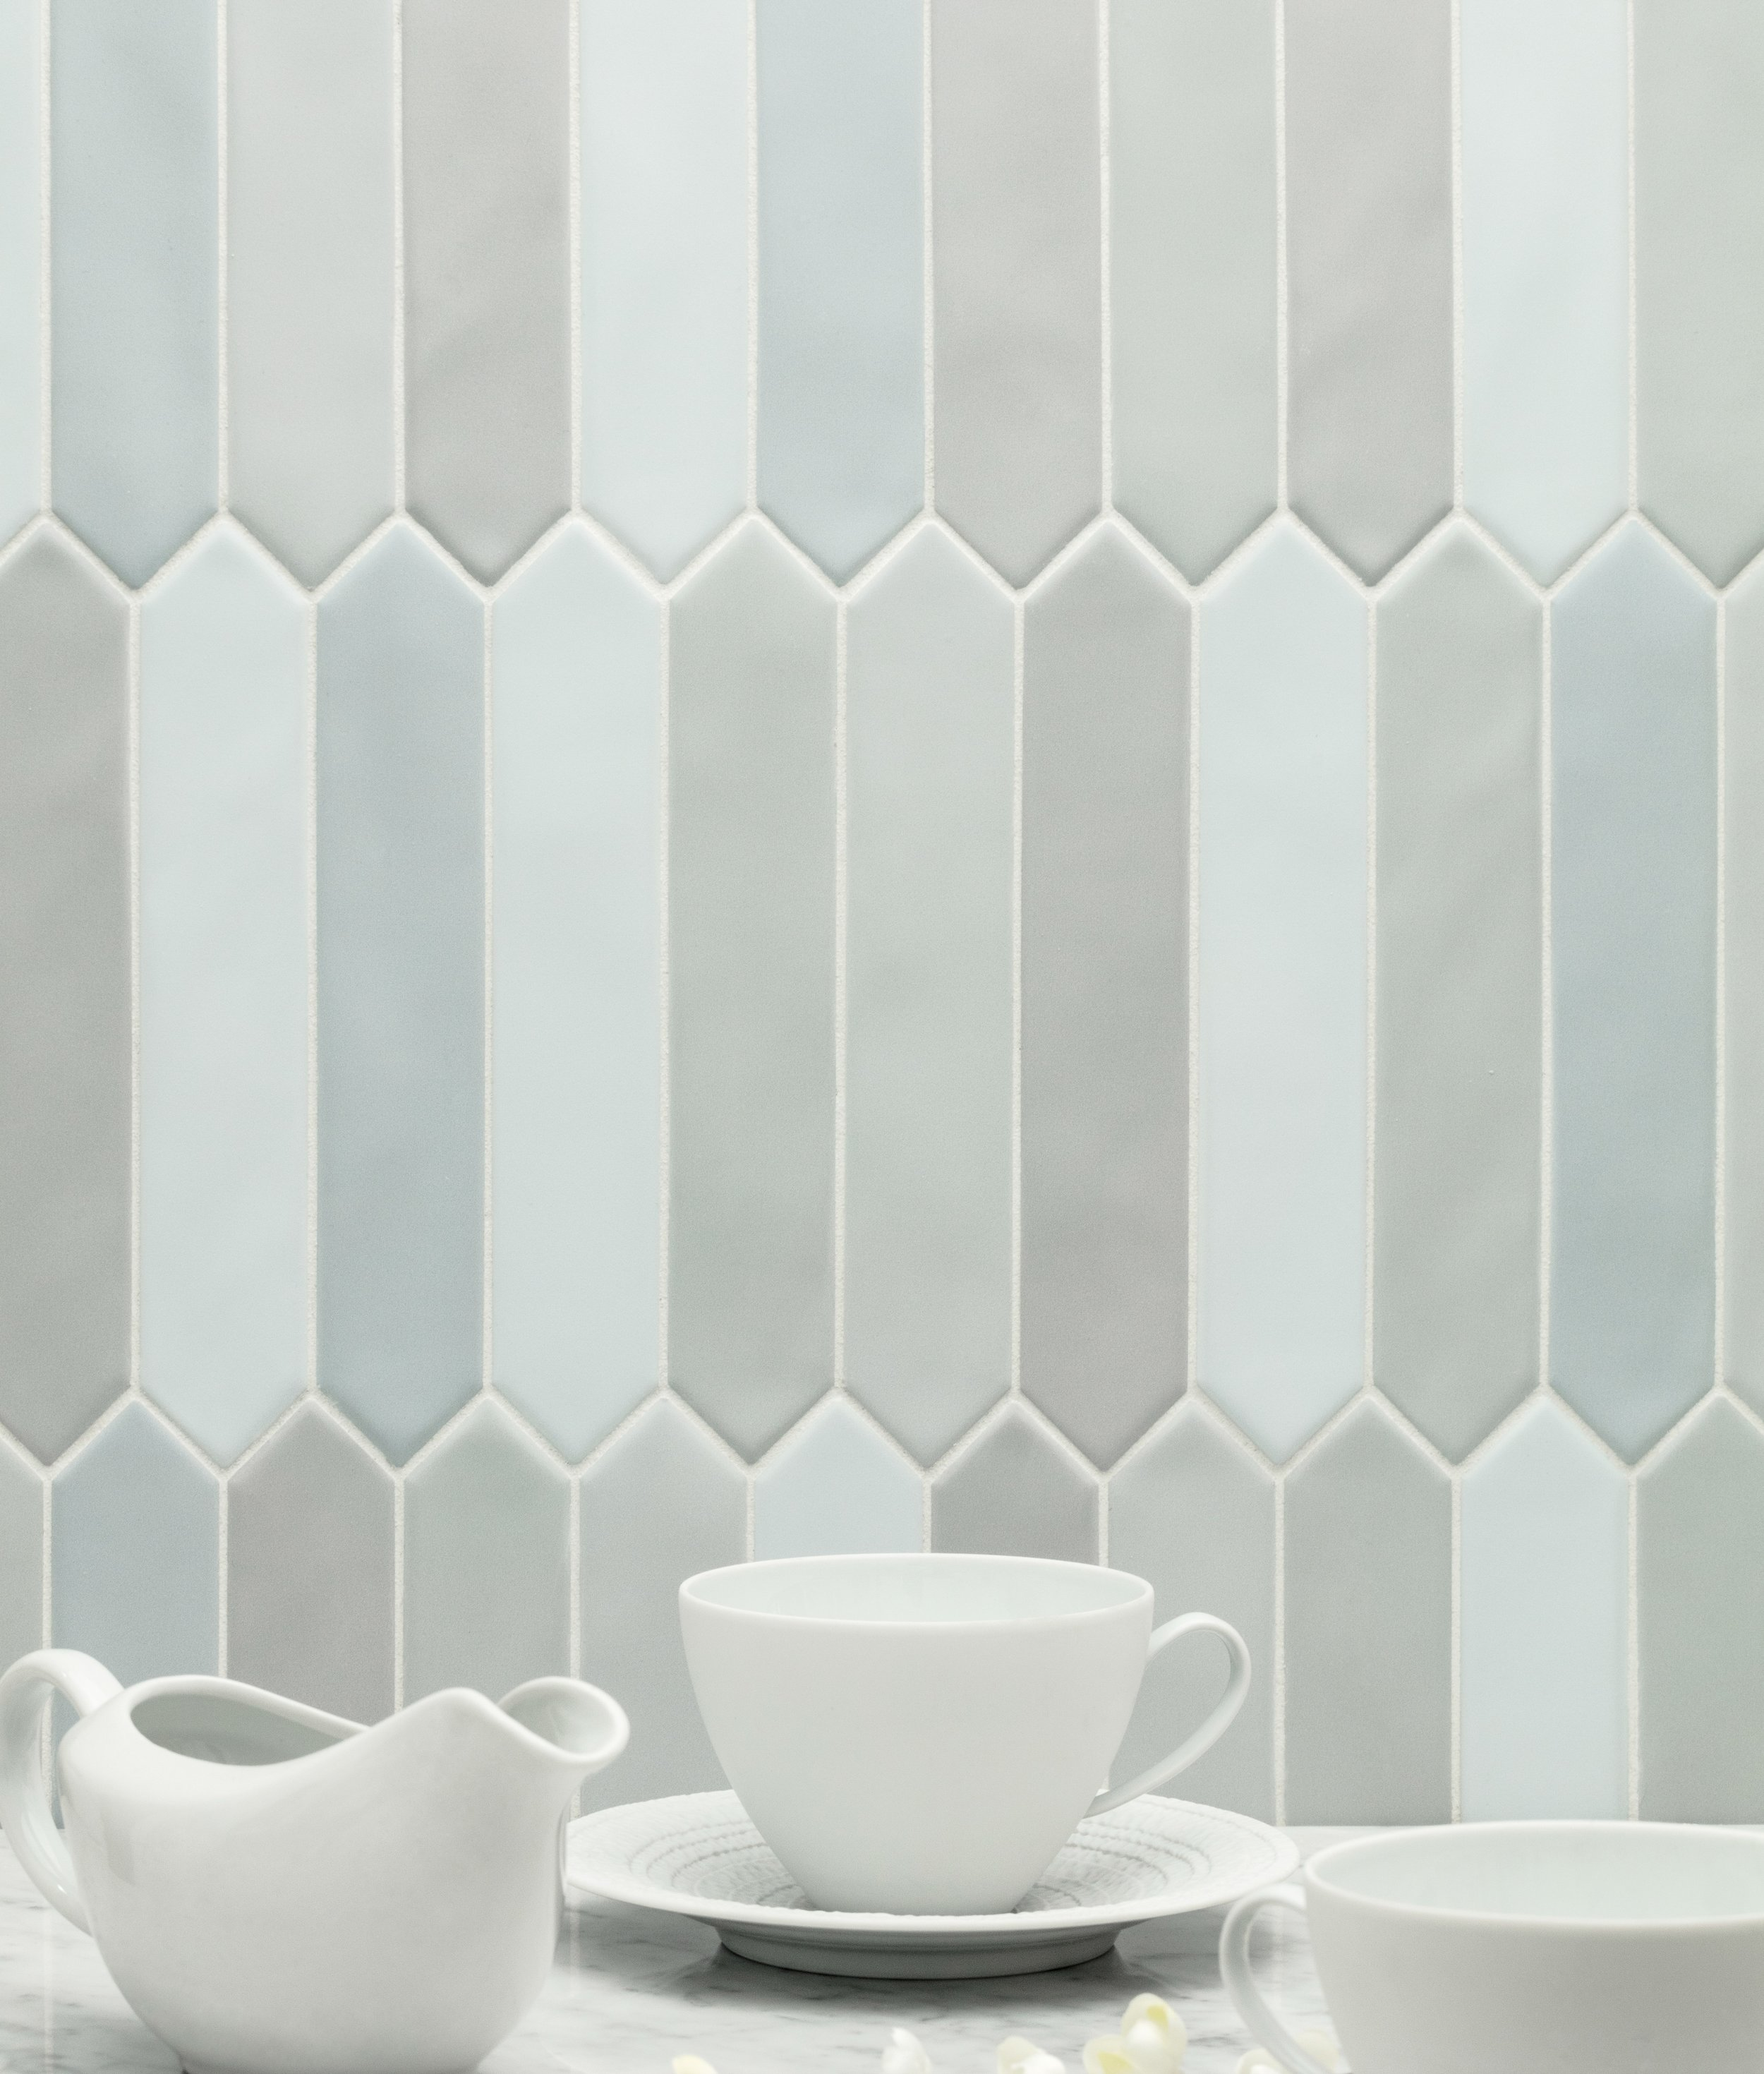 ART - Artistic -Melange Azul Picket - Ceramic - Backsplash.jpg